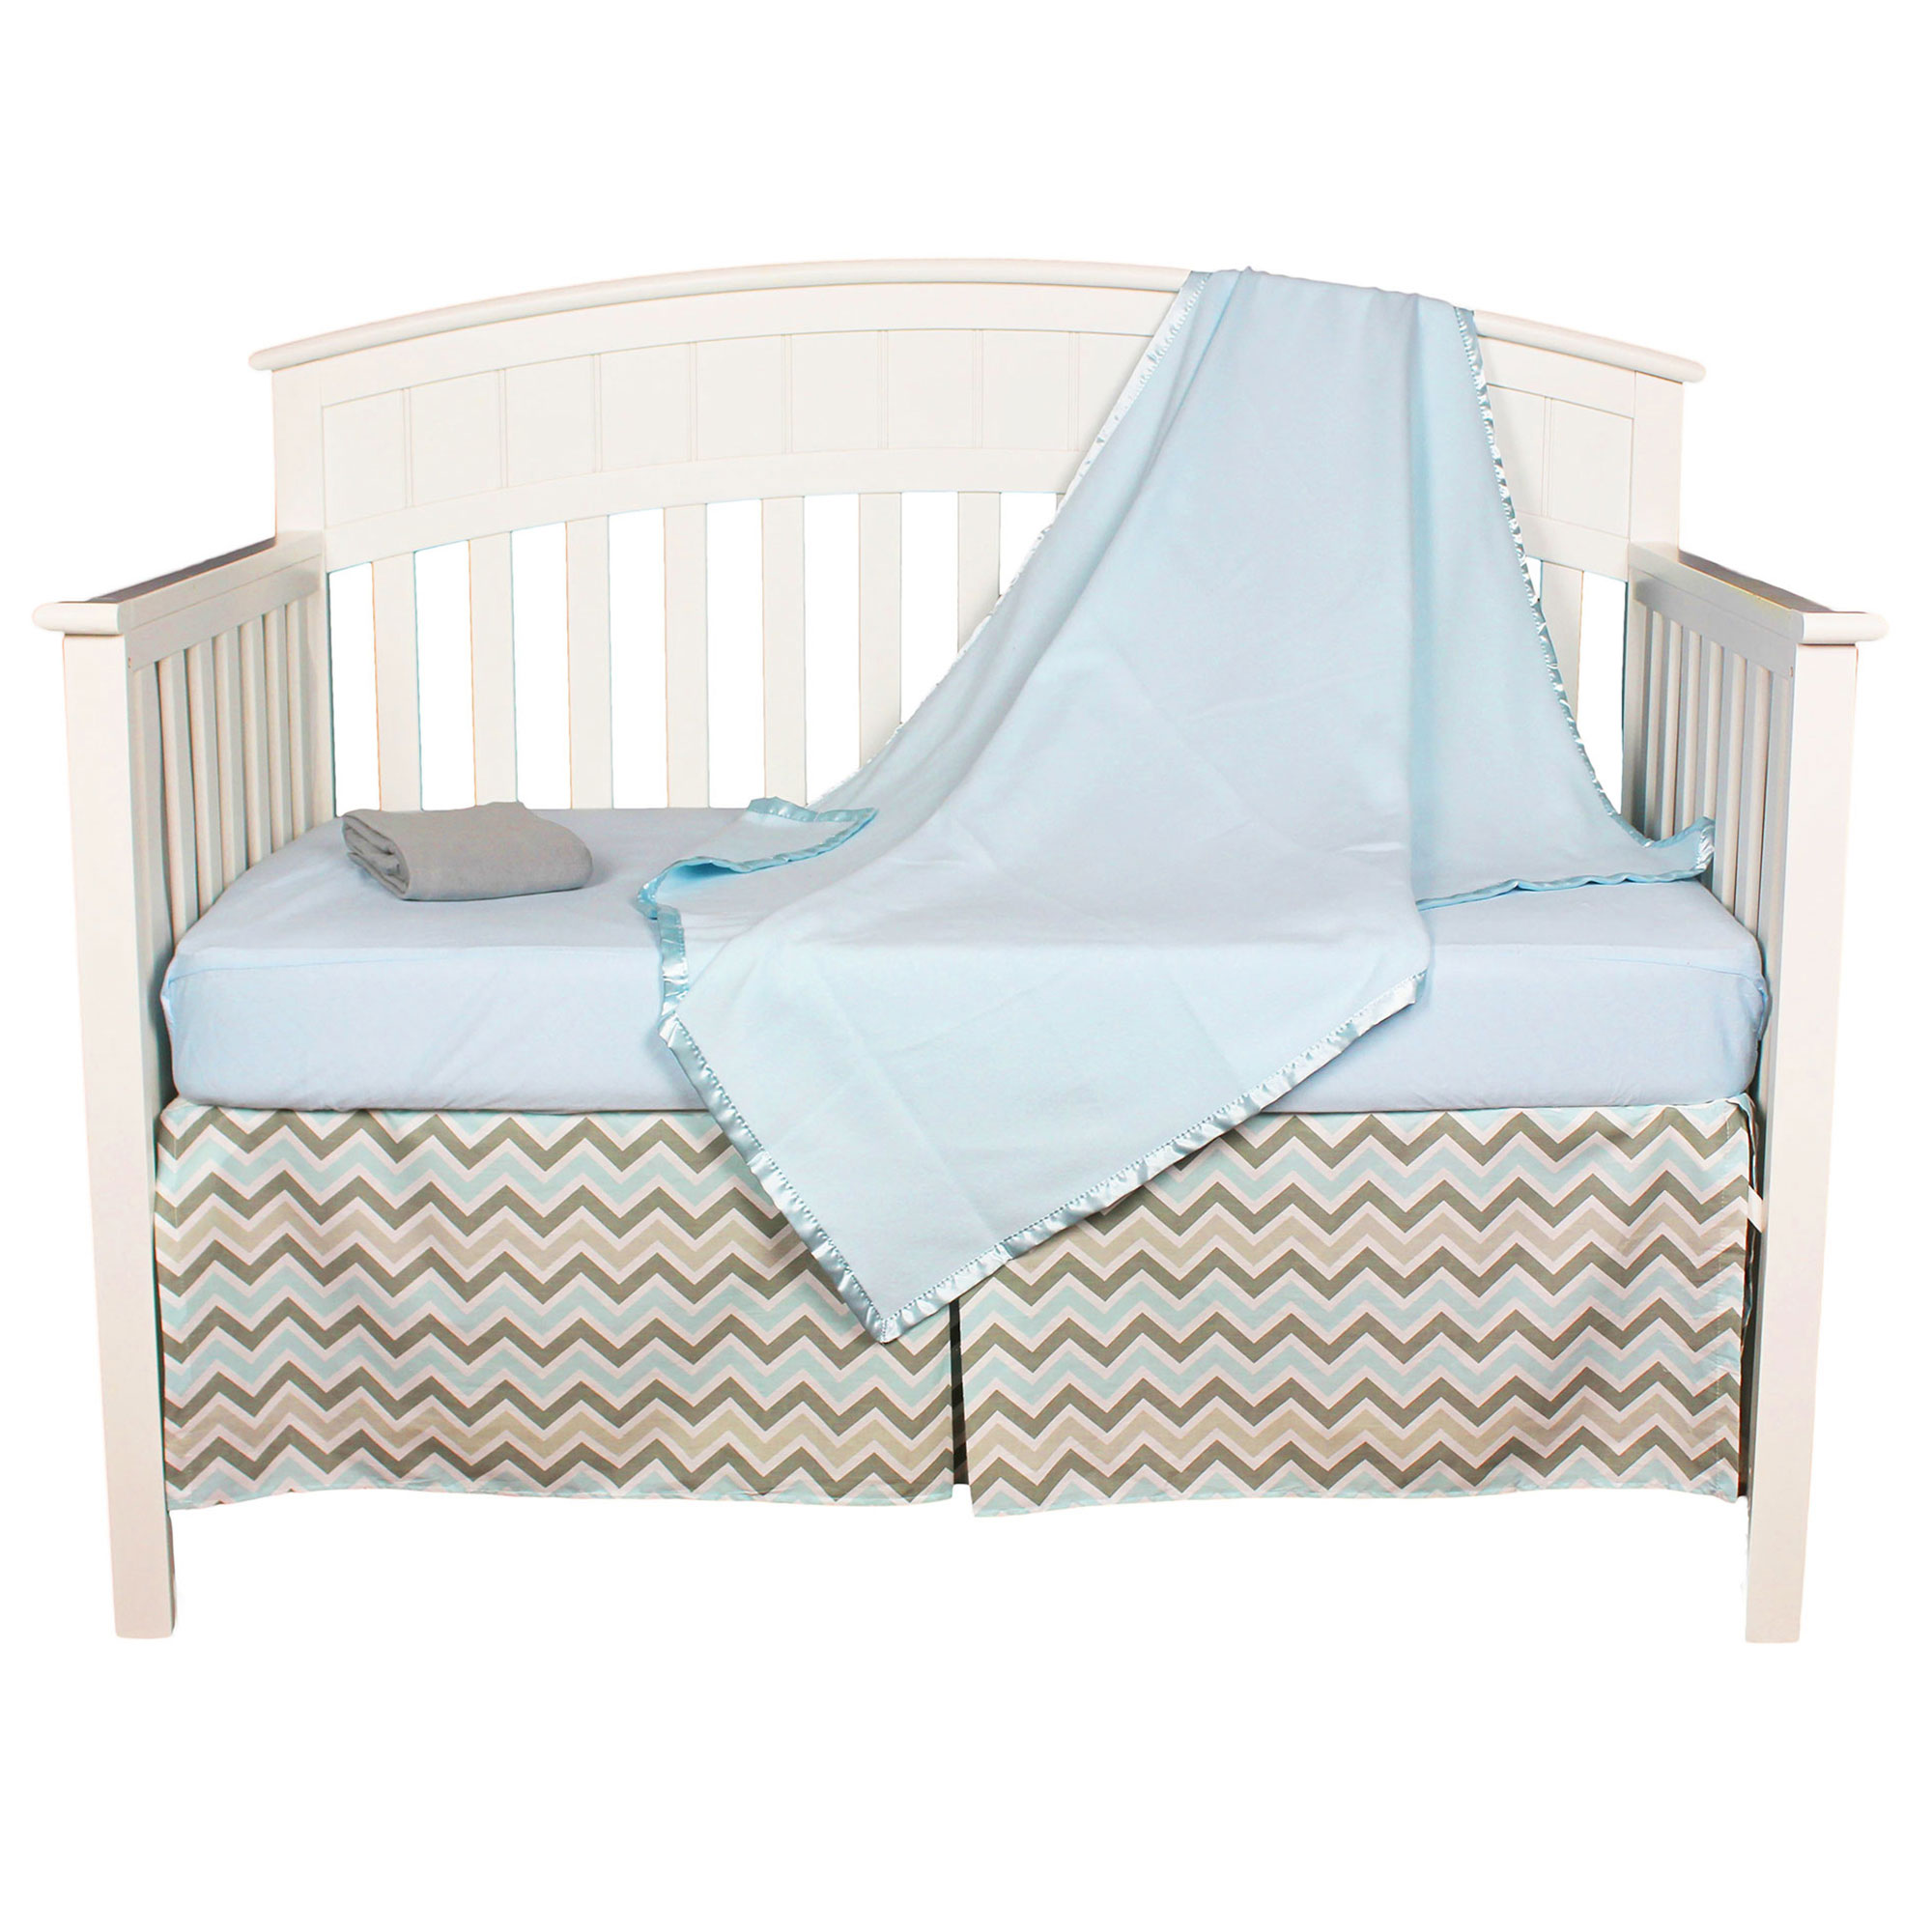 American Baby Company Crib Bedding Set - Blue and Gray Zig Zag - Chevron 4 Piece Baby Bedding Set with Fleece Blanket